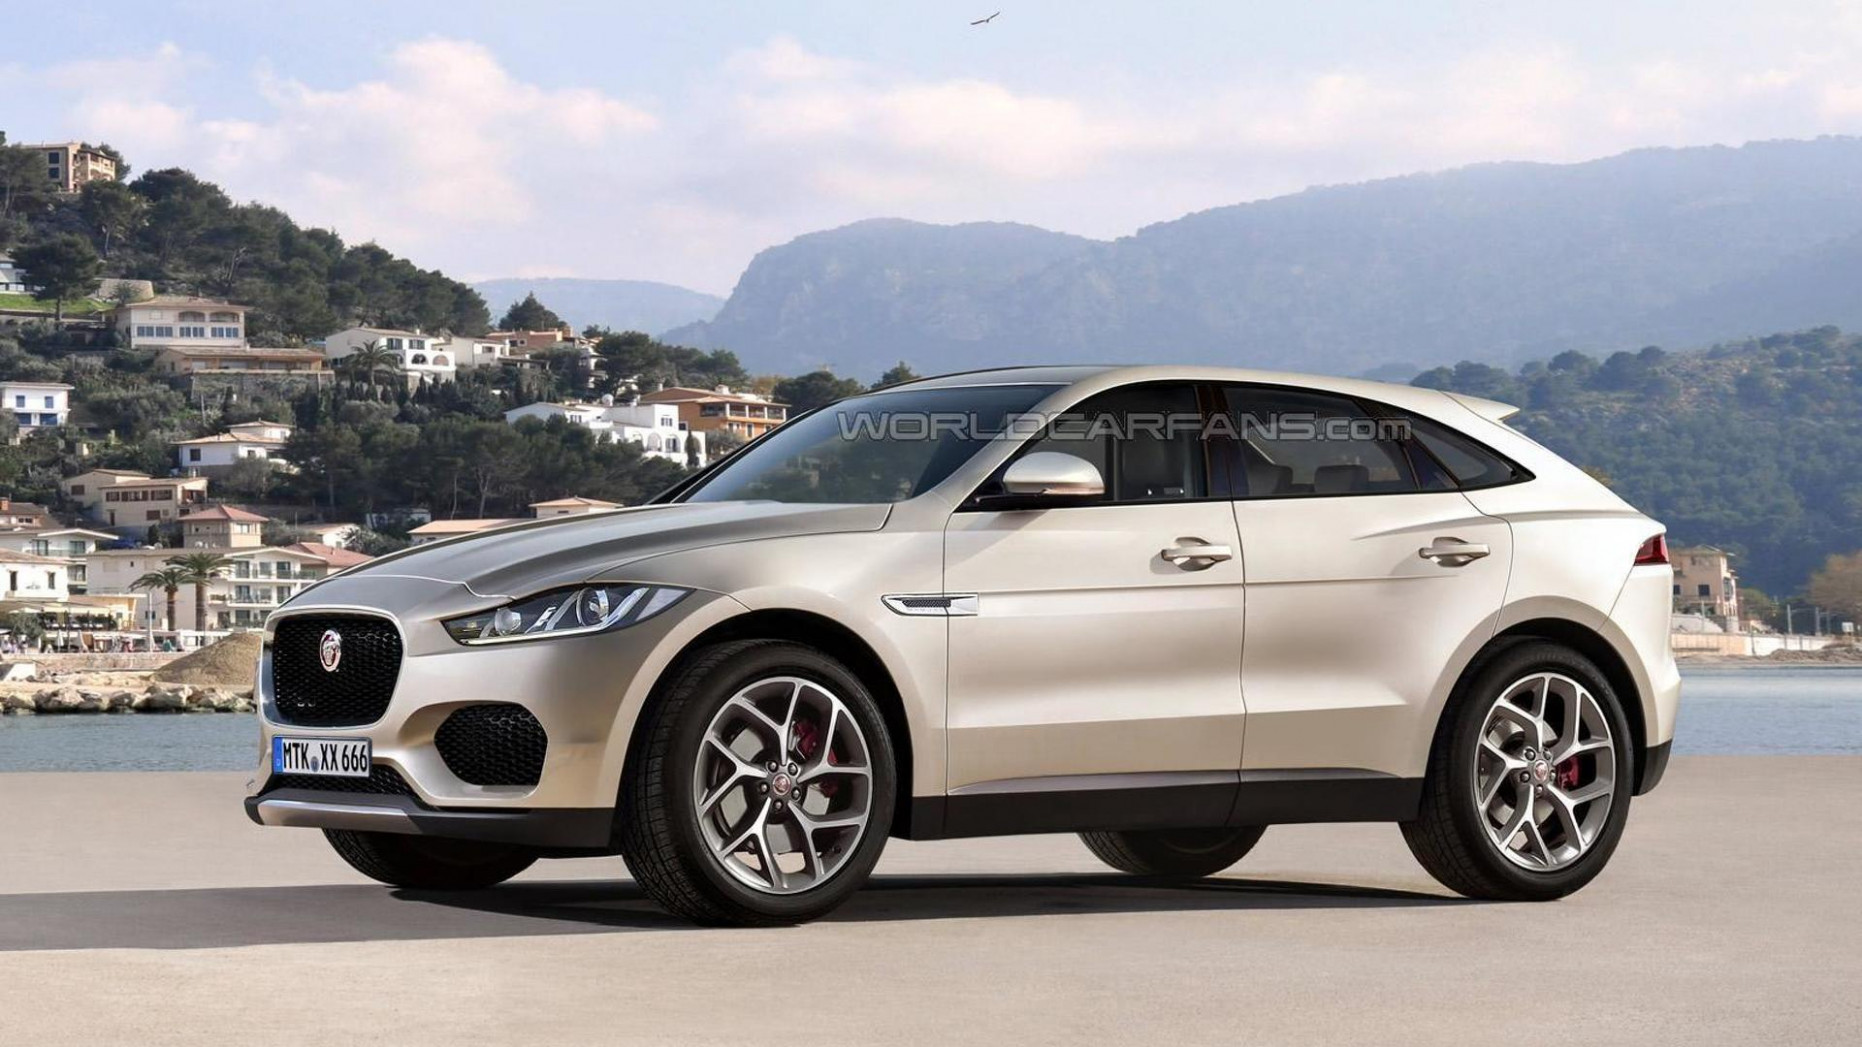 Jaguar E-Pace speculatively rendered, coming before 8 - jaguar e pace 2020